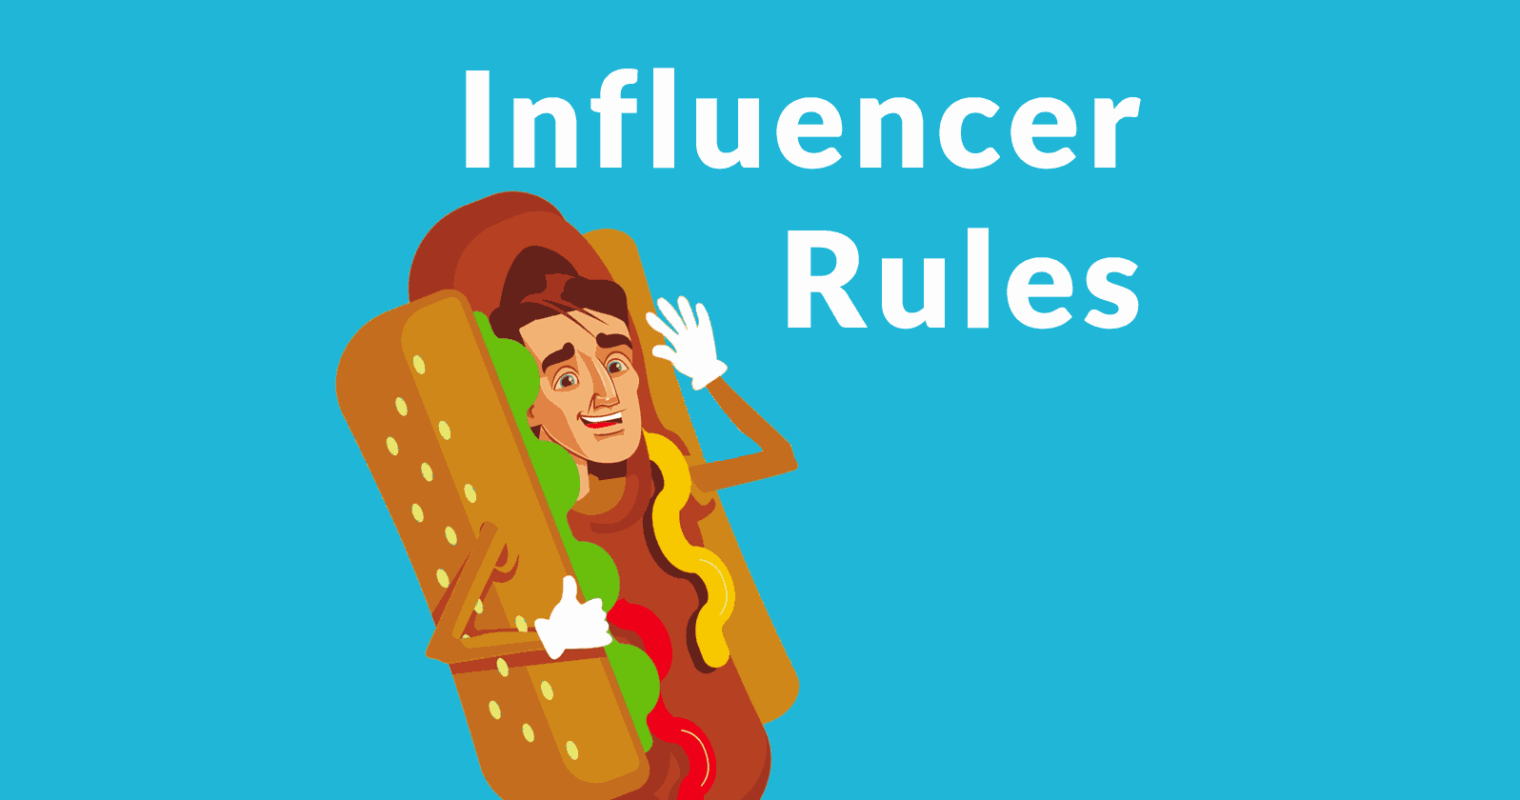 New FTC Guidance on Influencer Endorsements